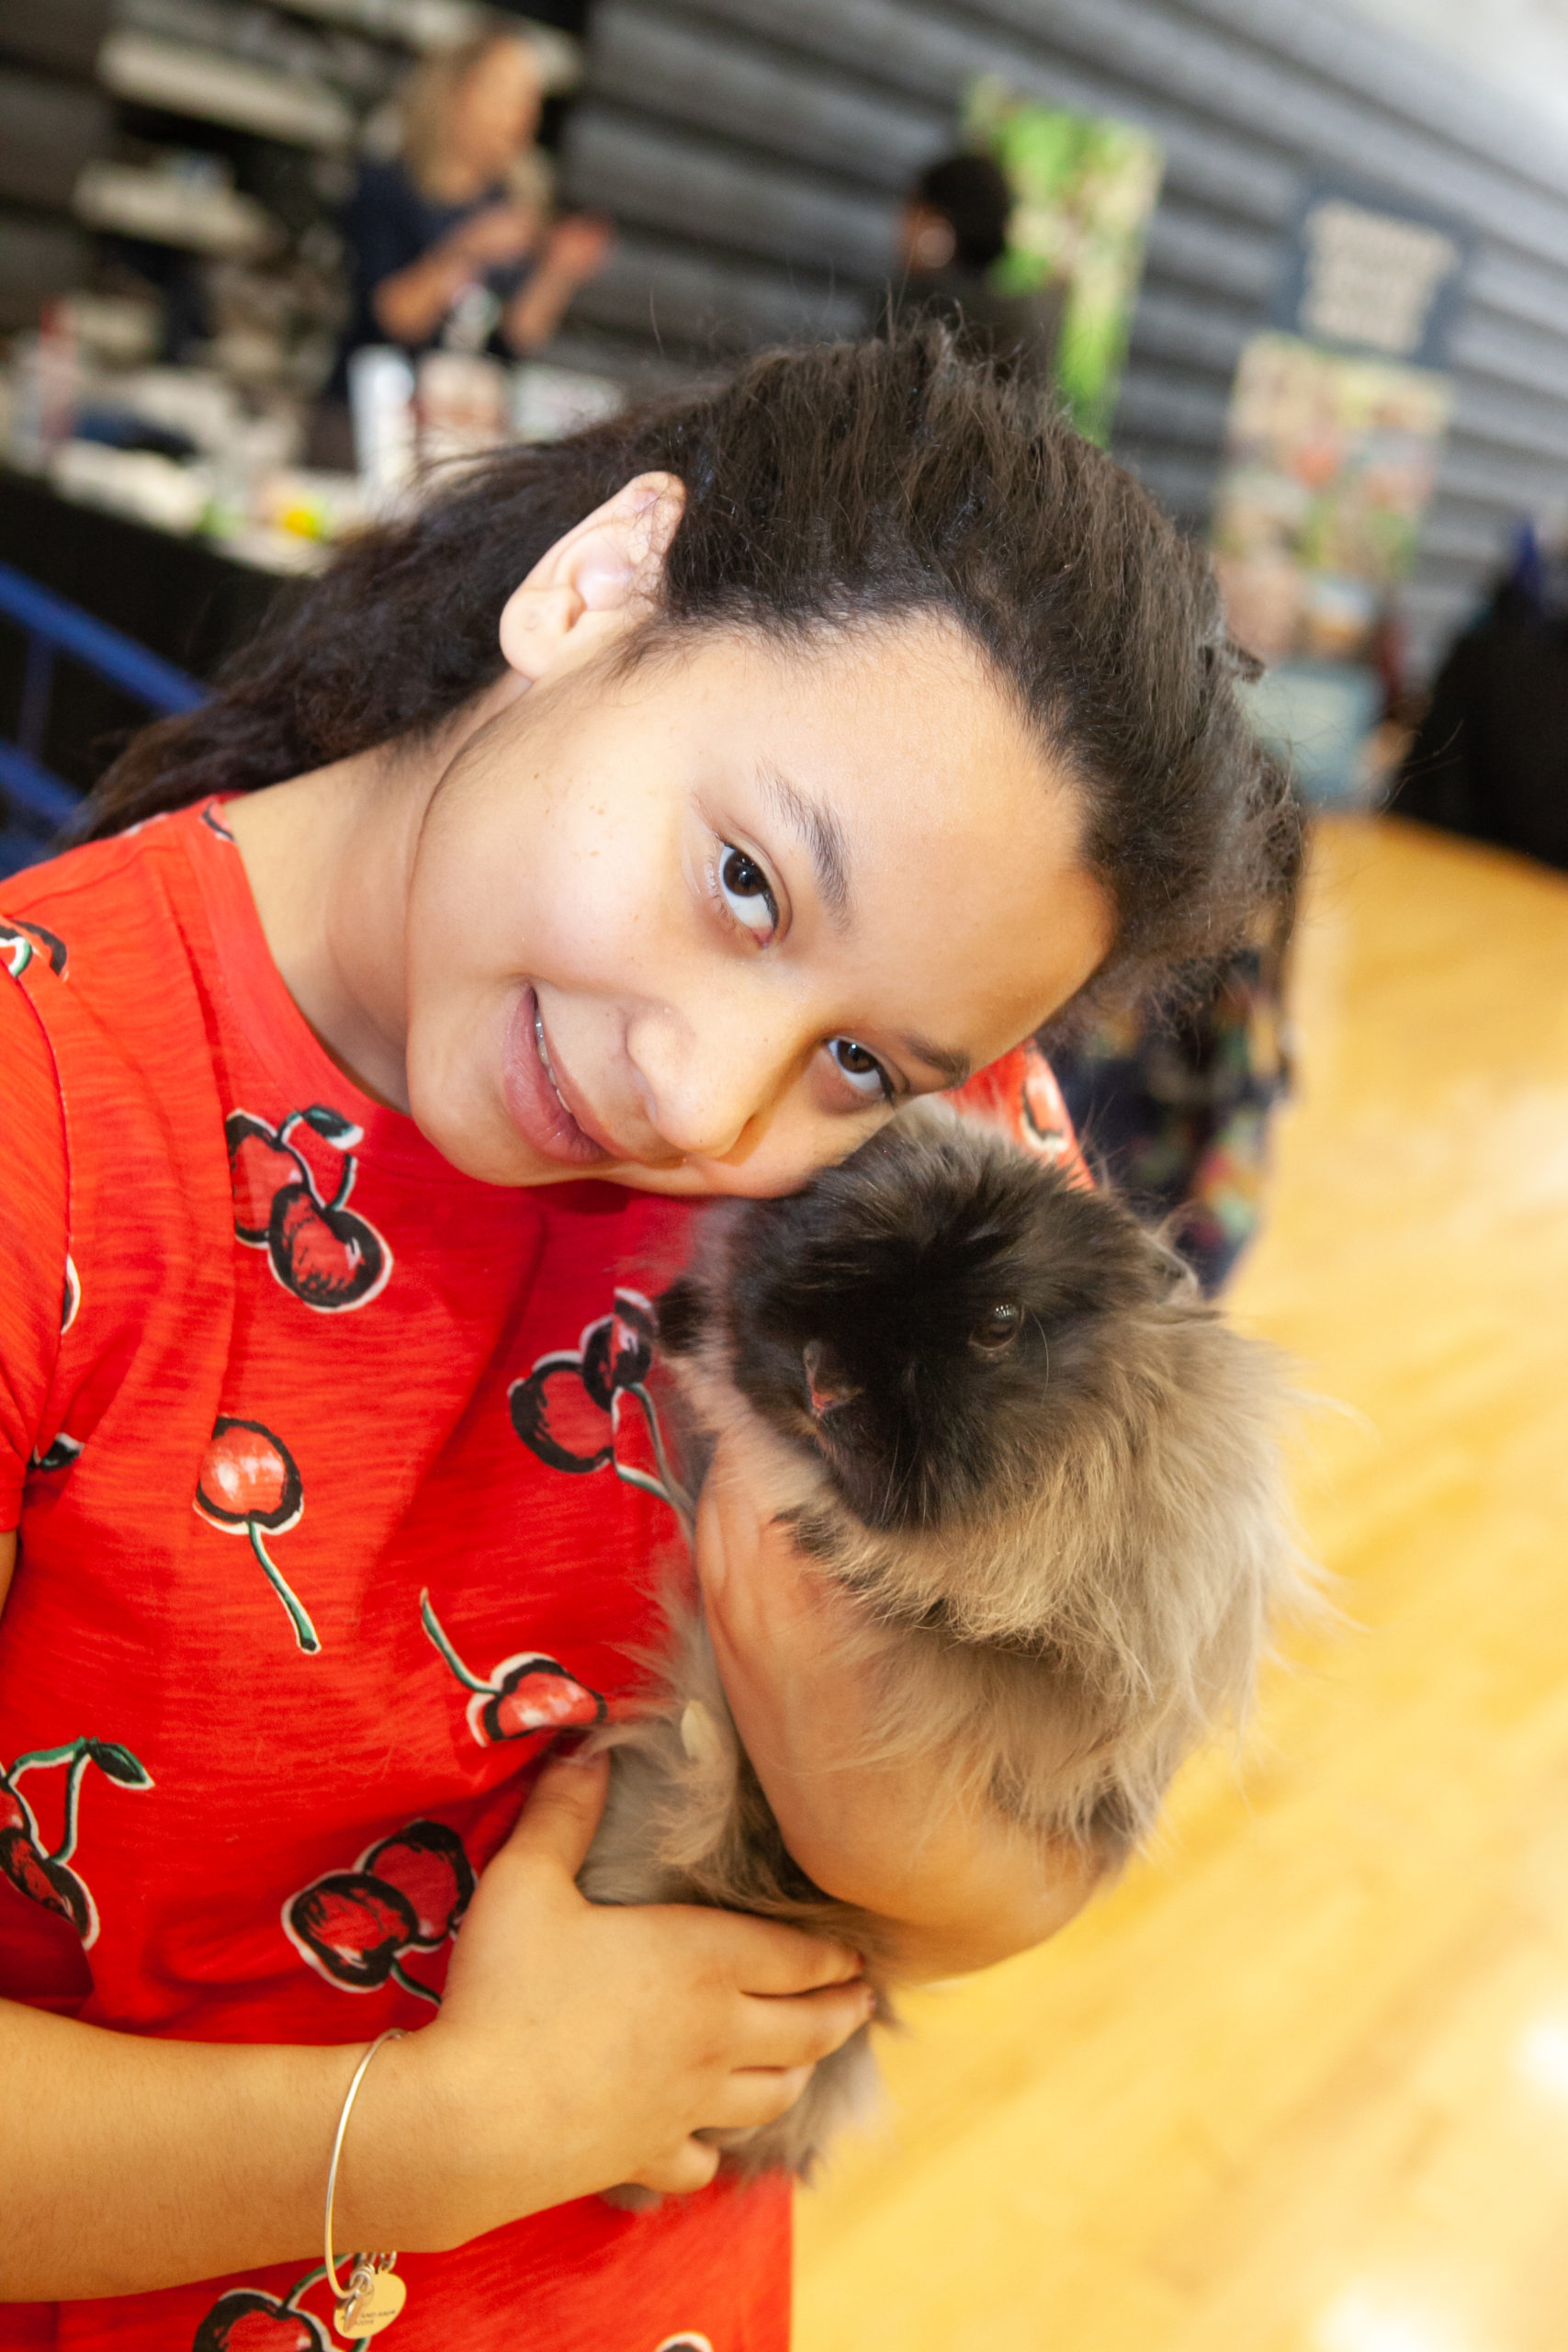 Girl holding bunny at Camp Expo 2019.